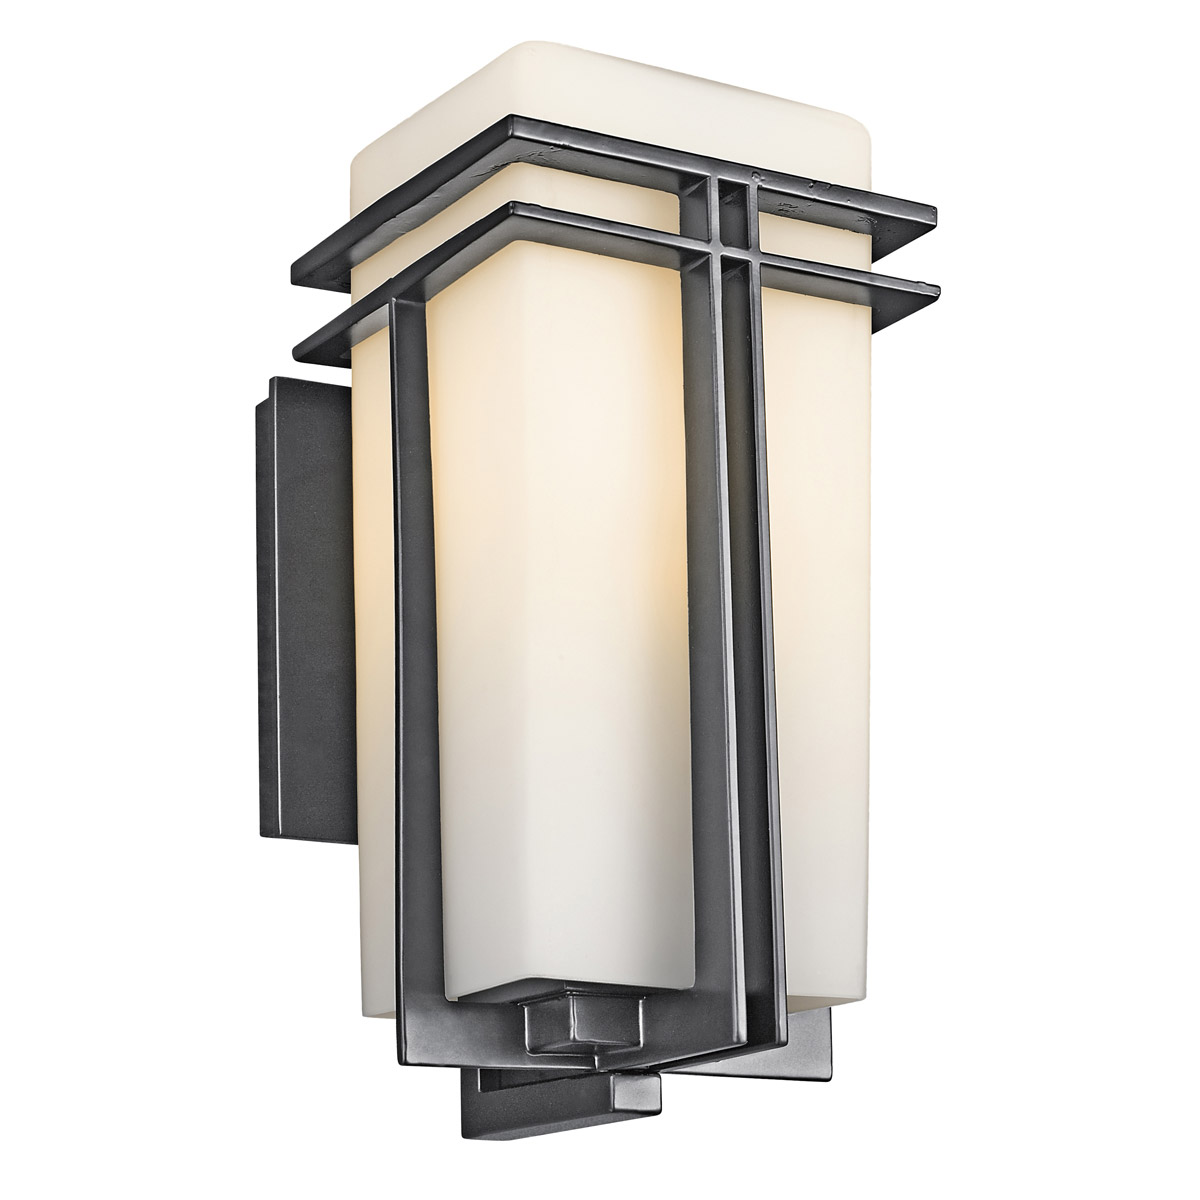 Kichler BK Tremillo Outdoor Wall Fixture